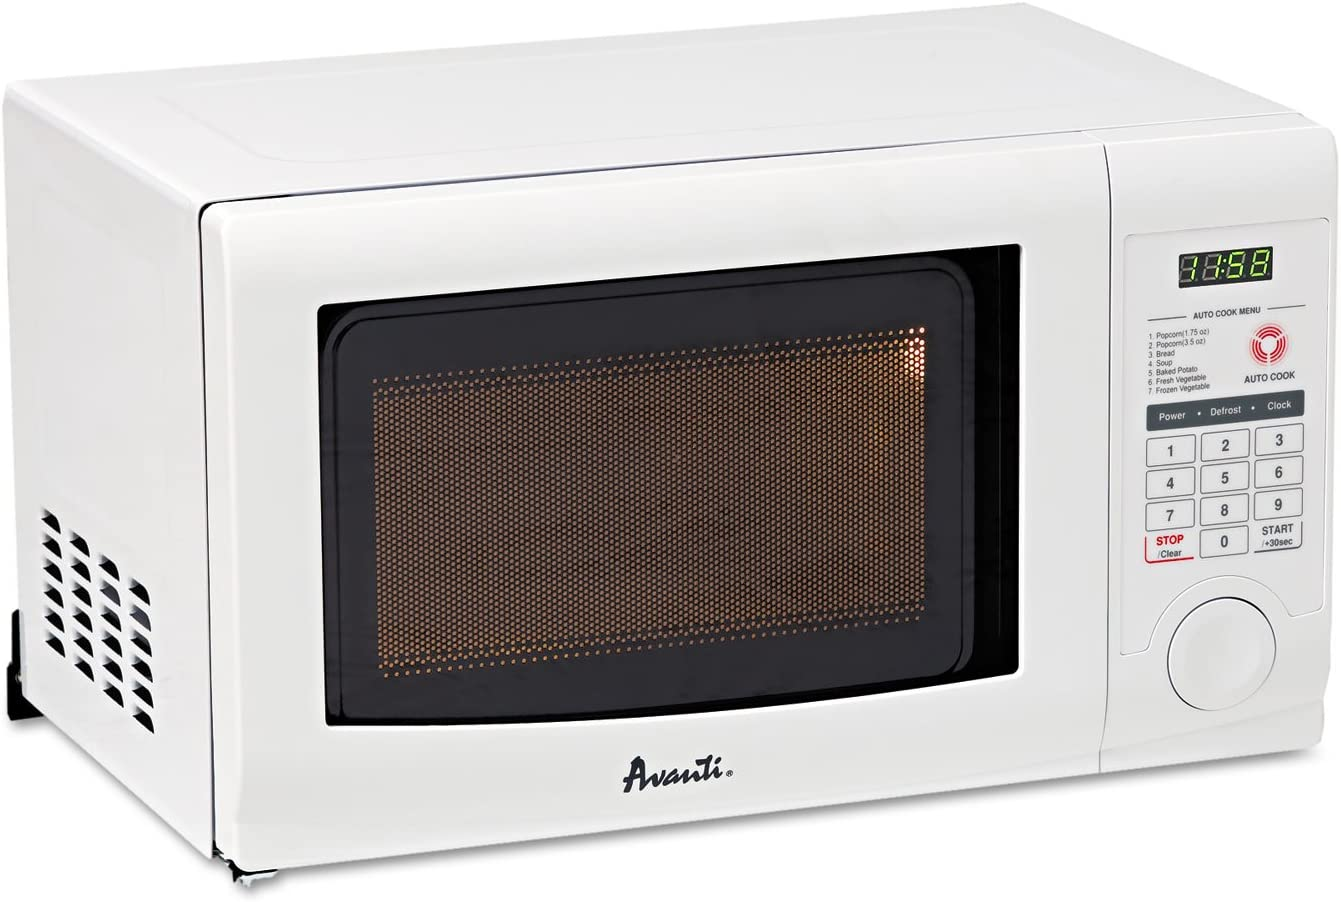 Avanti MO7191TW 0.7 Cubic Foot Capacity Microwave Oven, 700 Watts, White